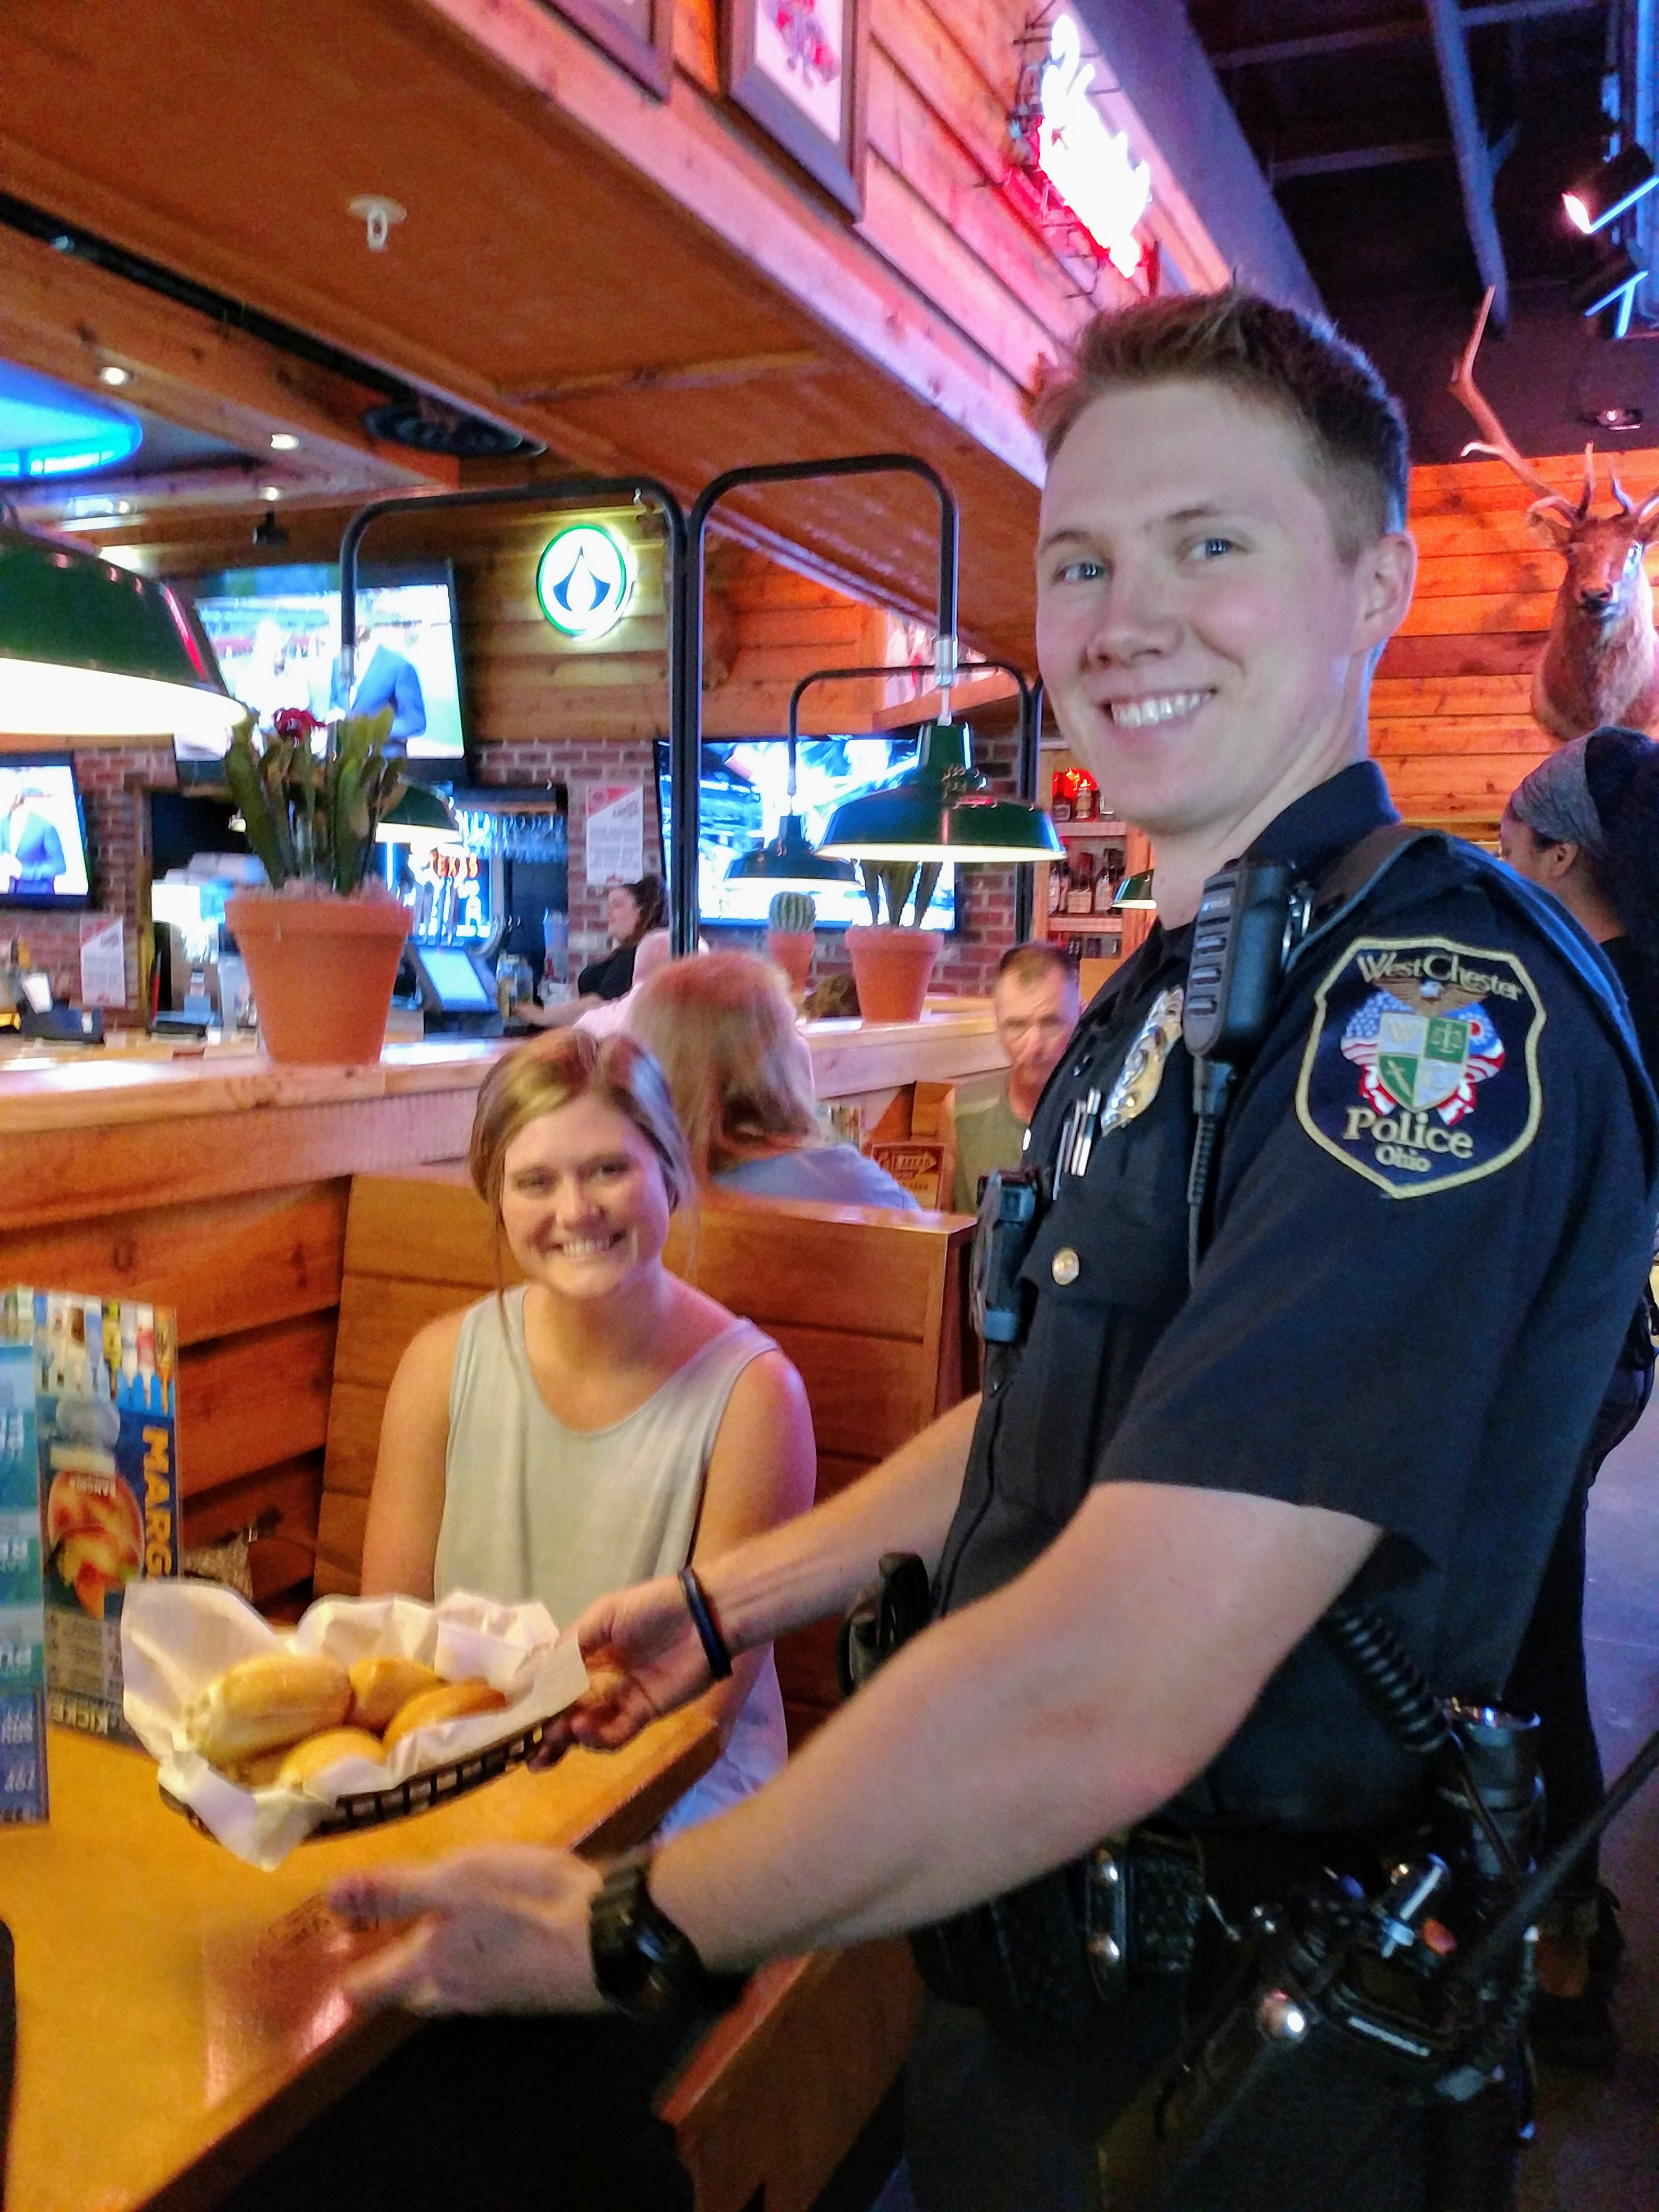 Tip-A-Cop at Texas Roadhouse